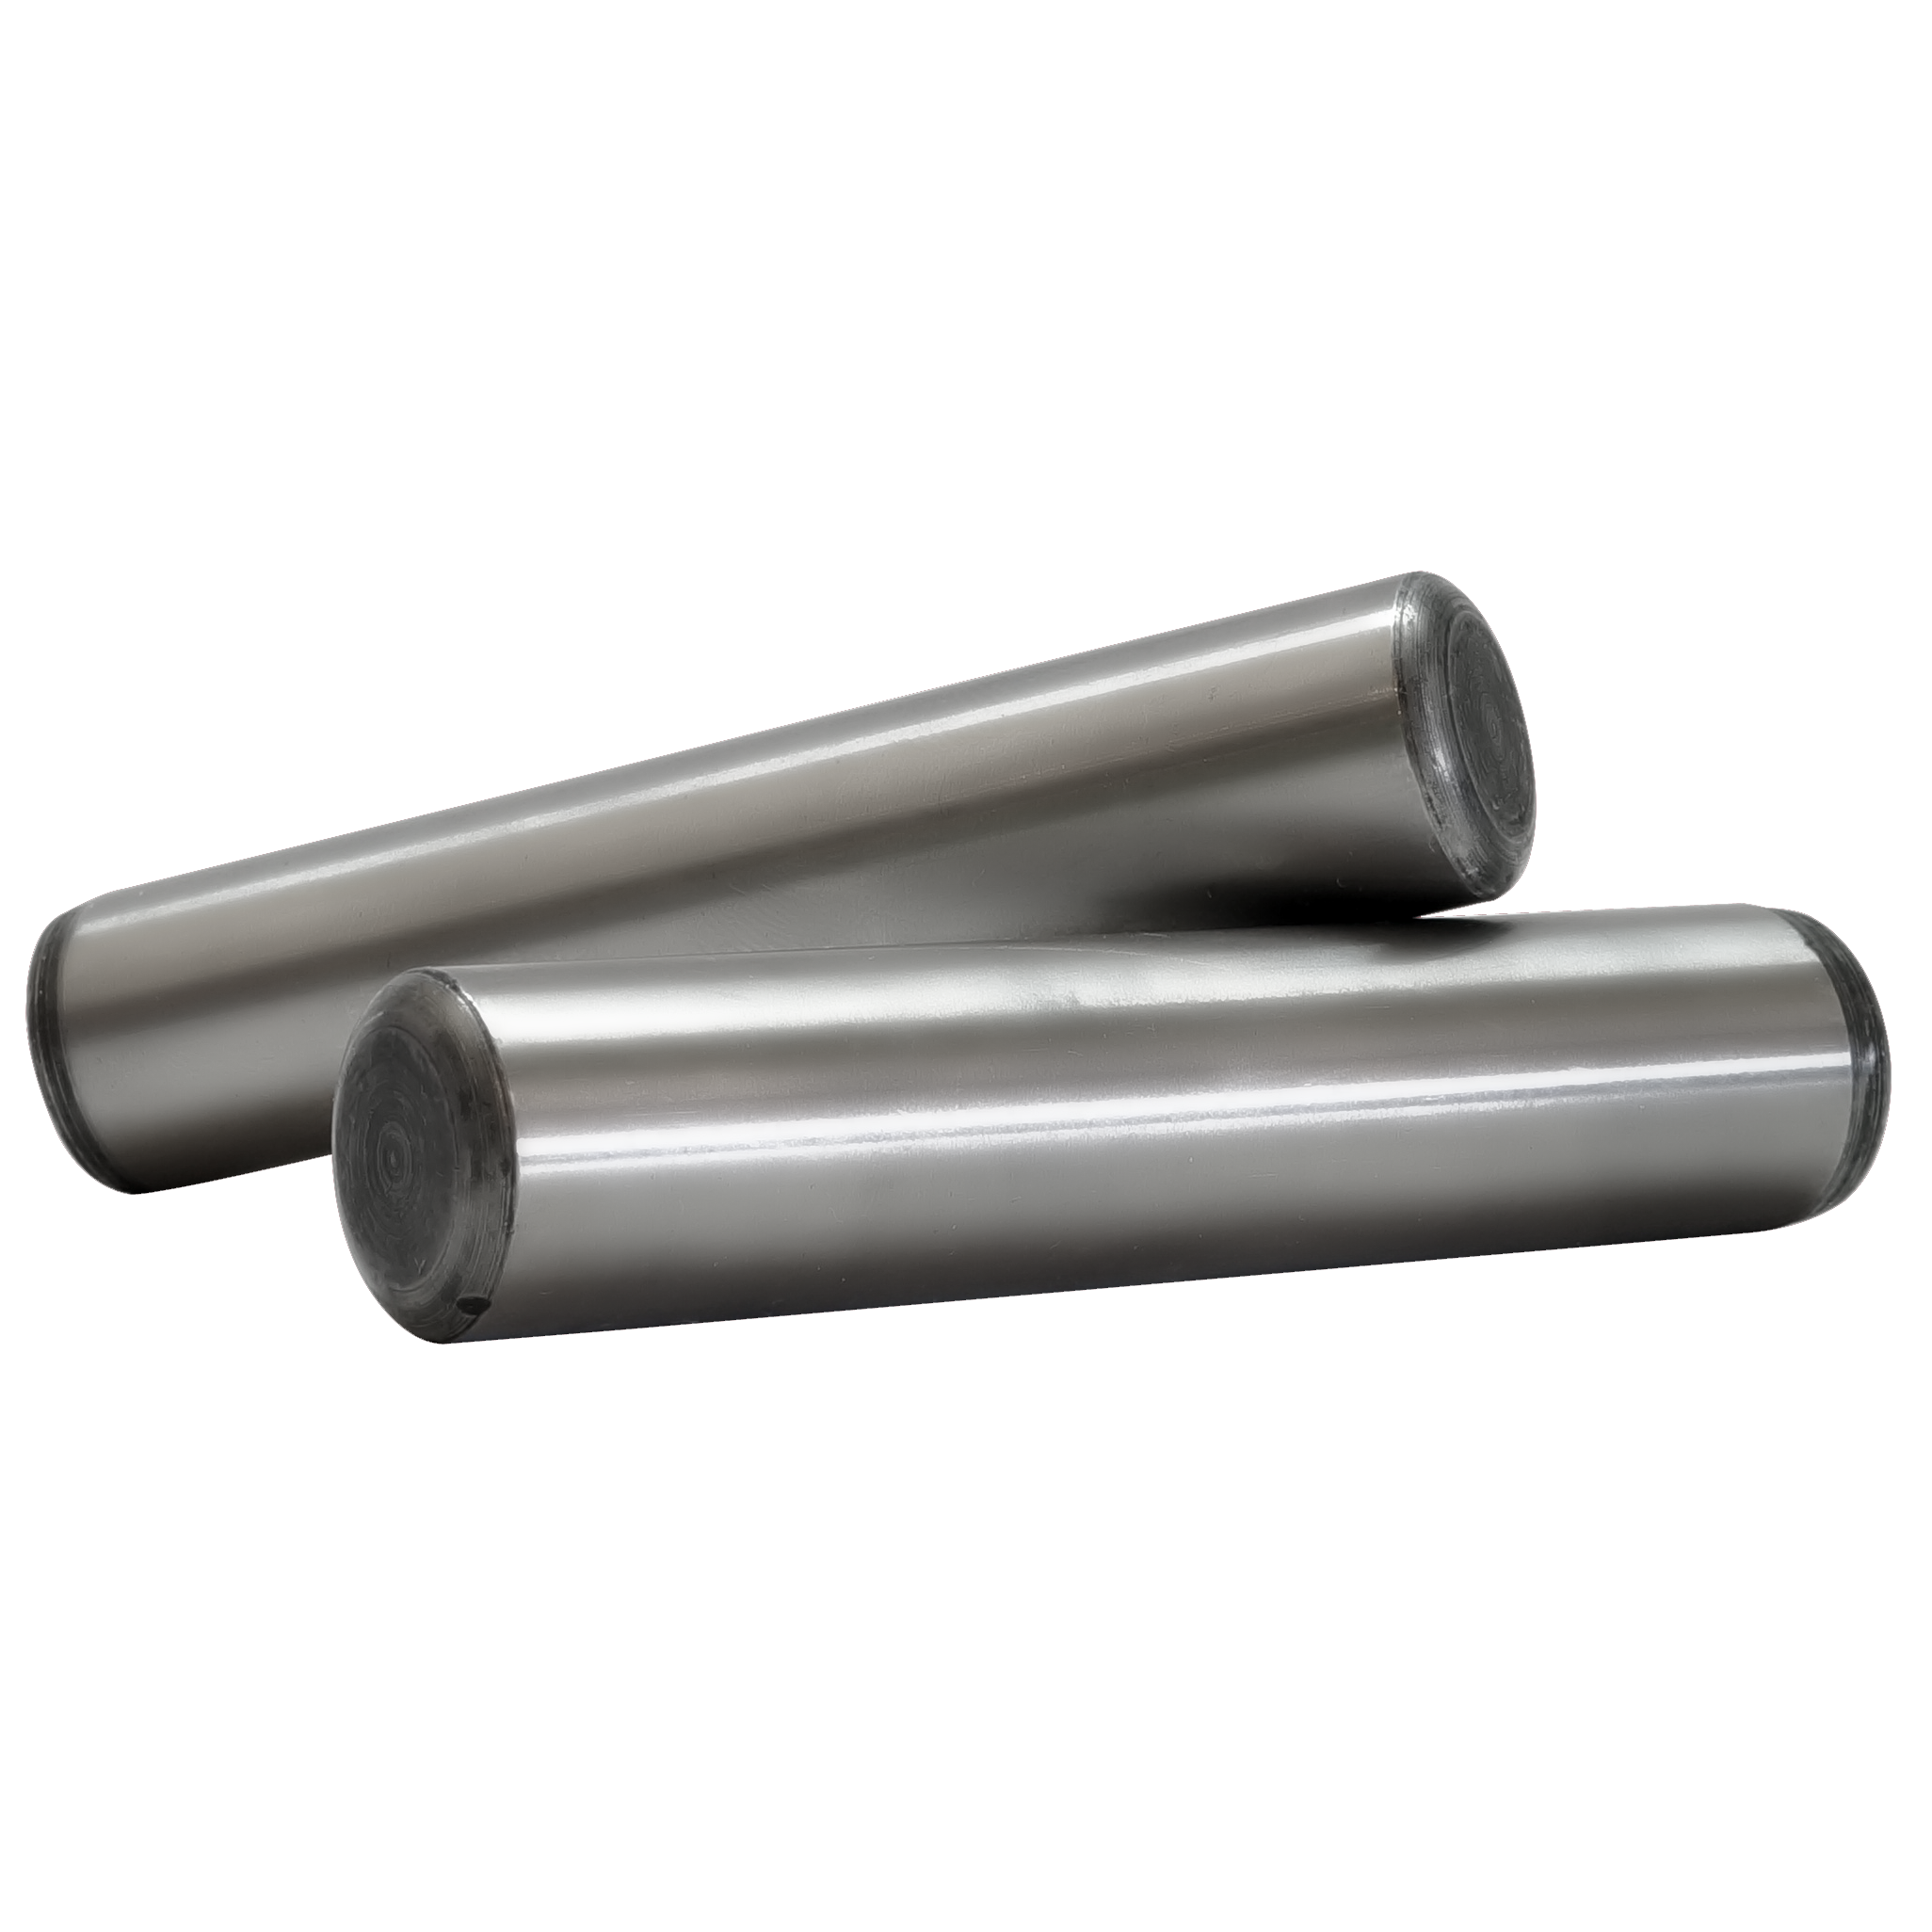 "M2x18 DIN 6325 Alloy Steel Dowel Pin Hardened Ground 0.0002"" Over Sized  (Unbrako)"